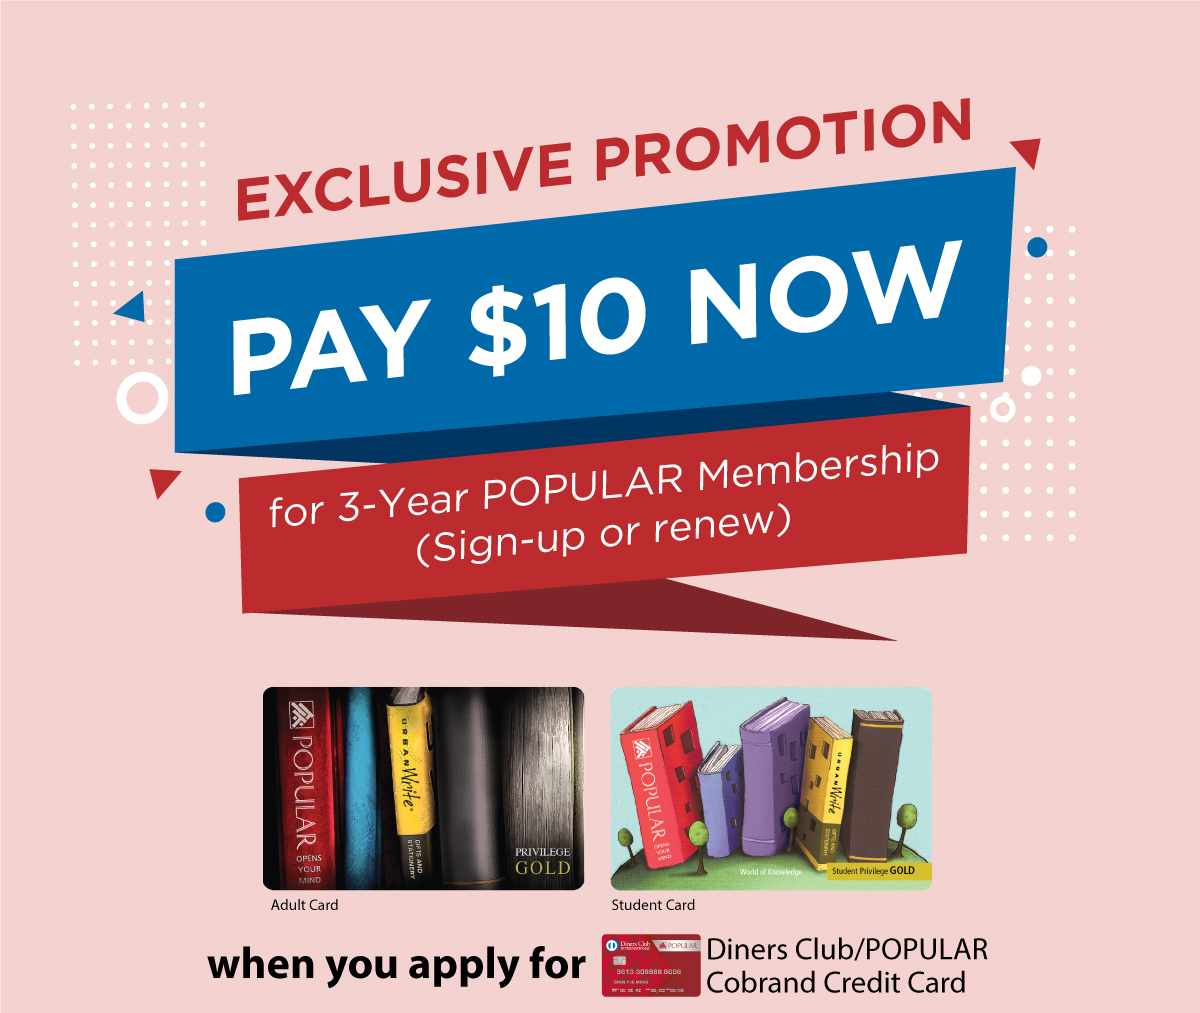 Pay $10 now for 3-Year POPULAR Membership (Sign-up or renew) when you apply for Diners Club/POPULAR Cobrand Credit Card